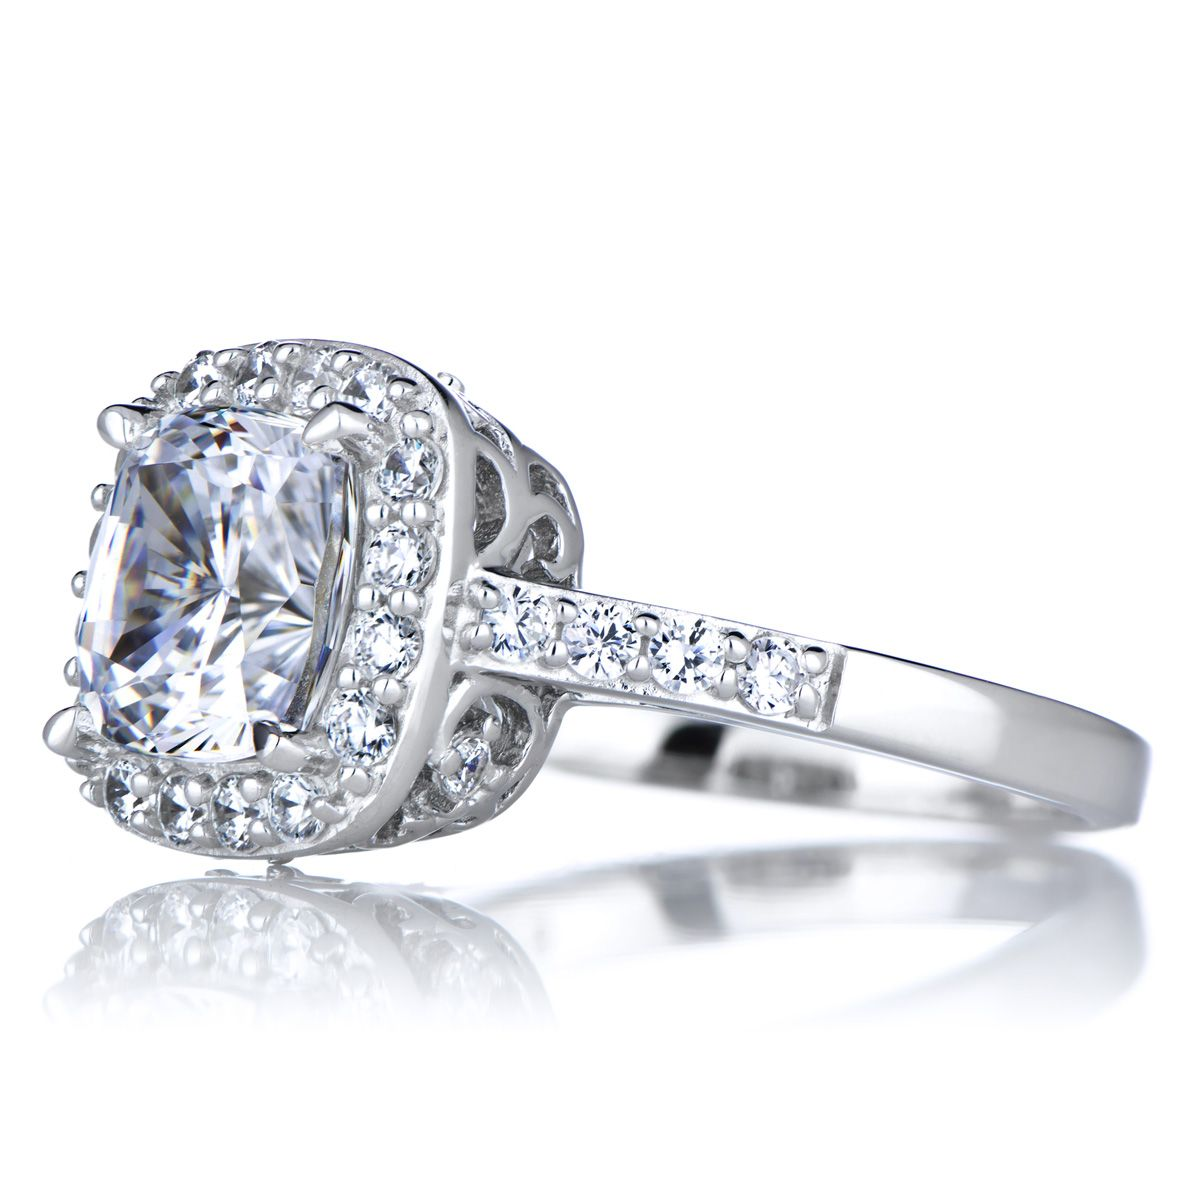 Сushion Сut Cubic Zirconia Engagement Rings